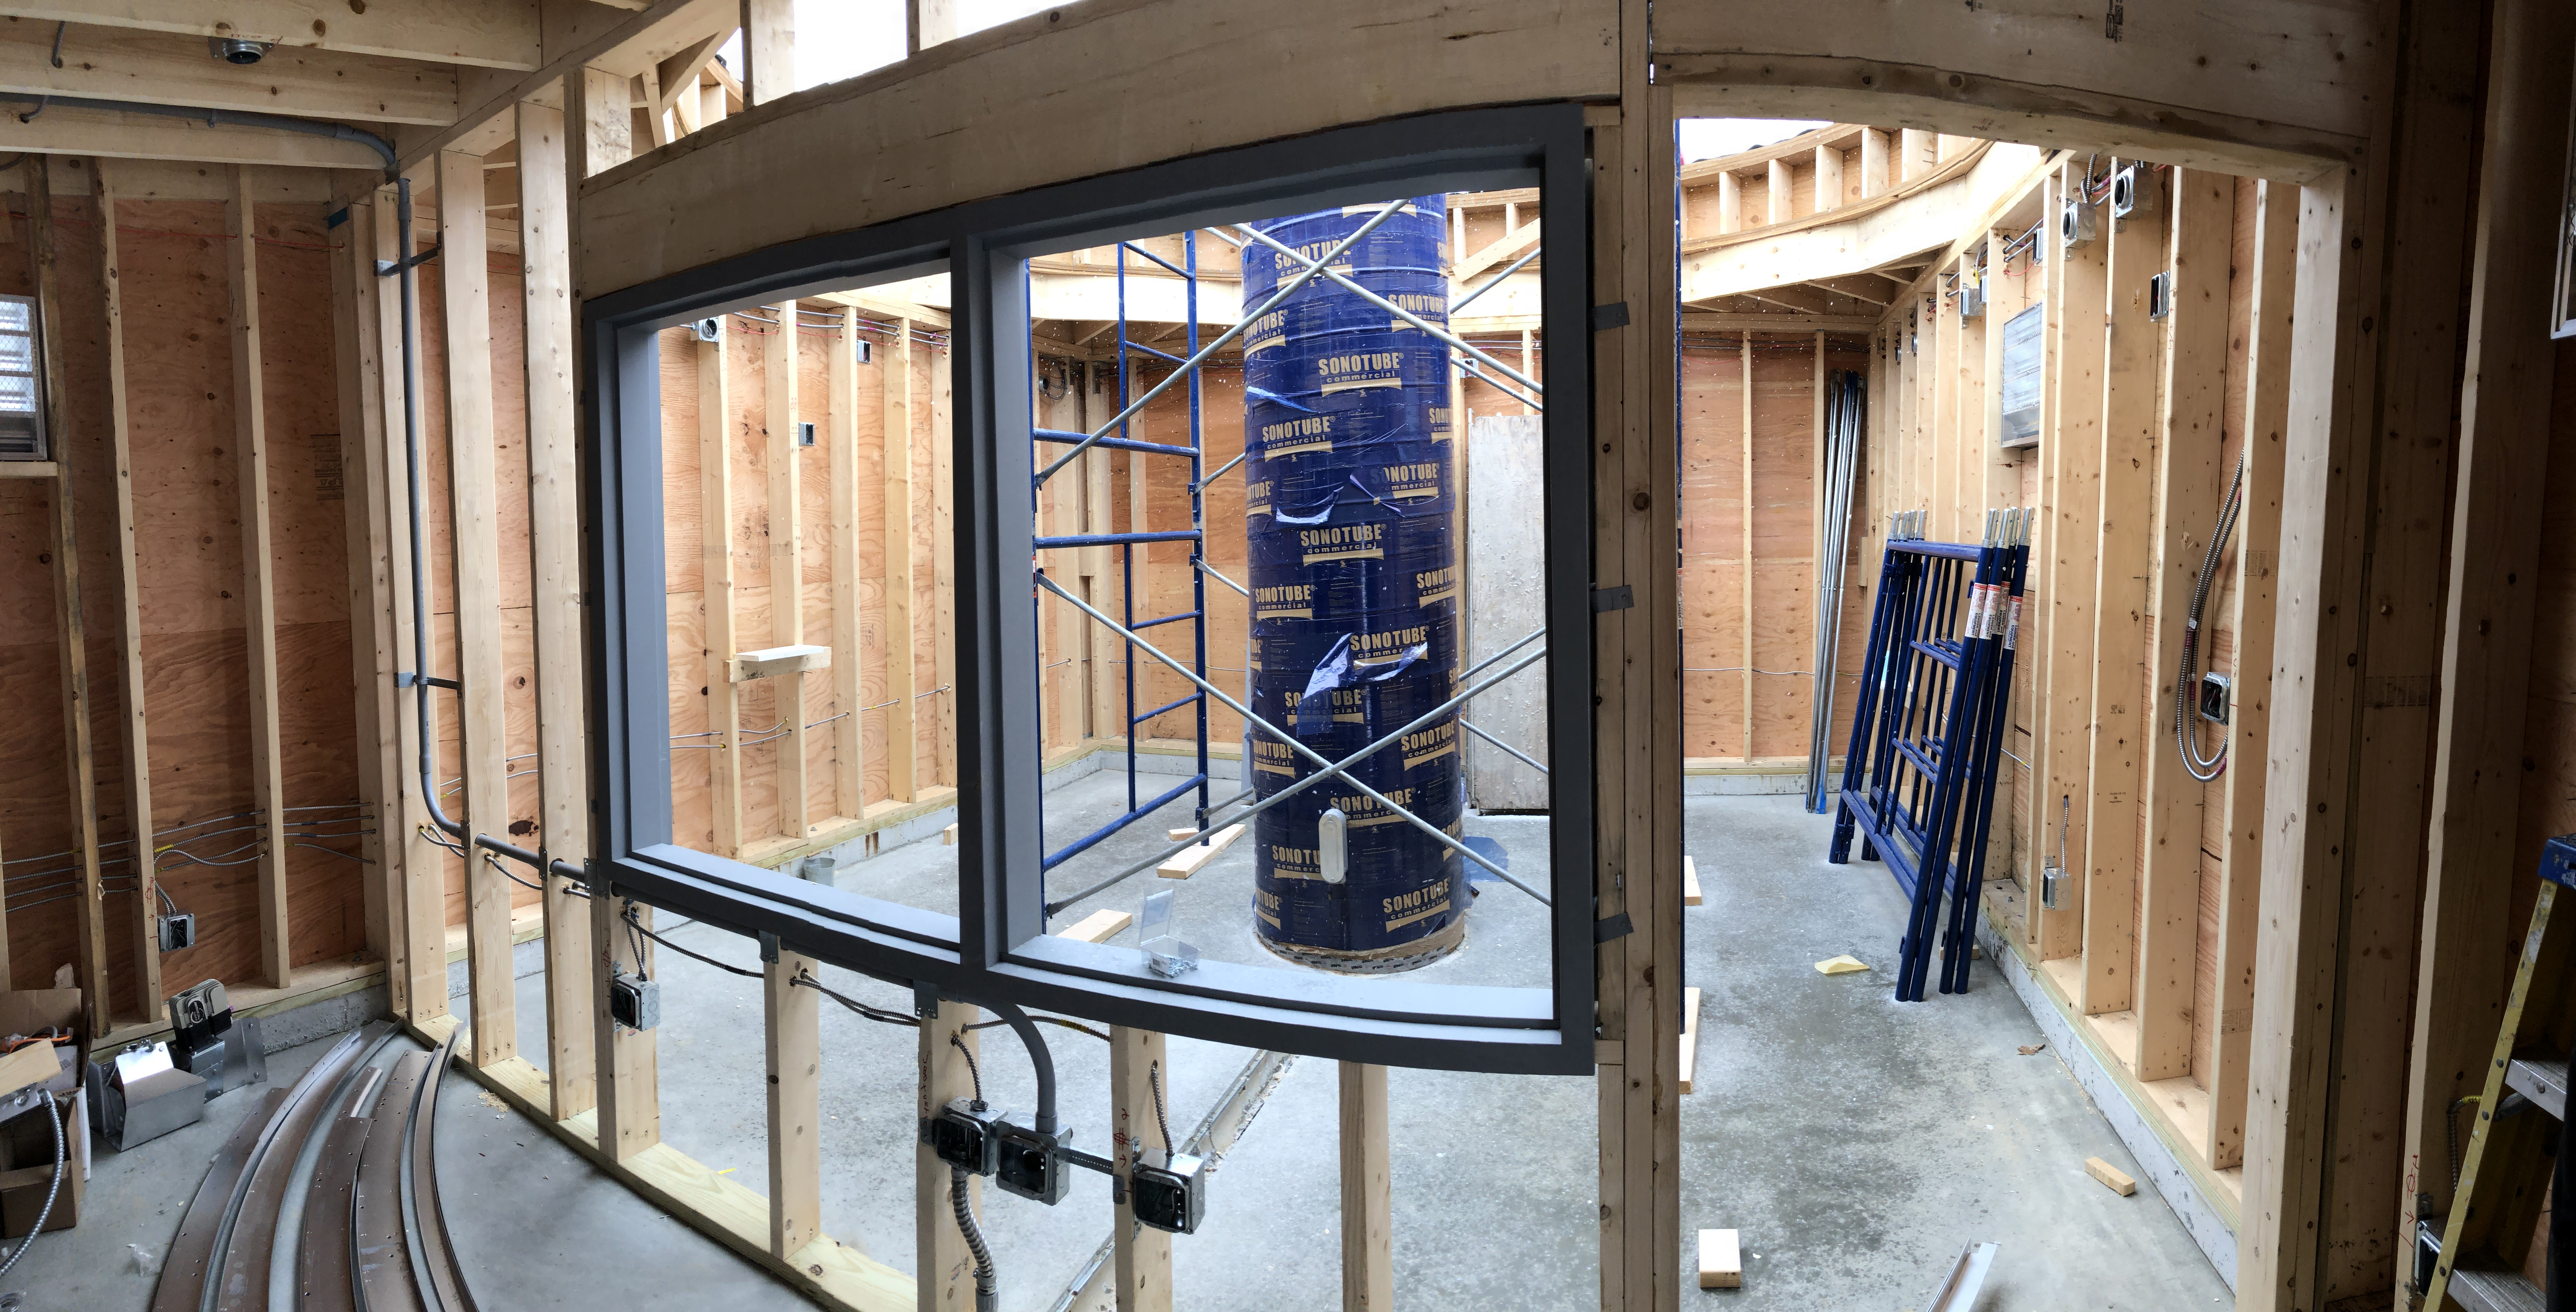 The view of the telescope room through the framed wall of the control room. The window casement has been installed along with initial conduit for electrical. network and telescope control lines.